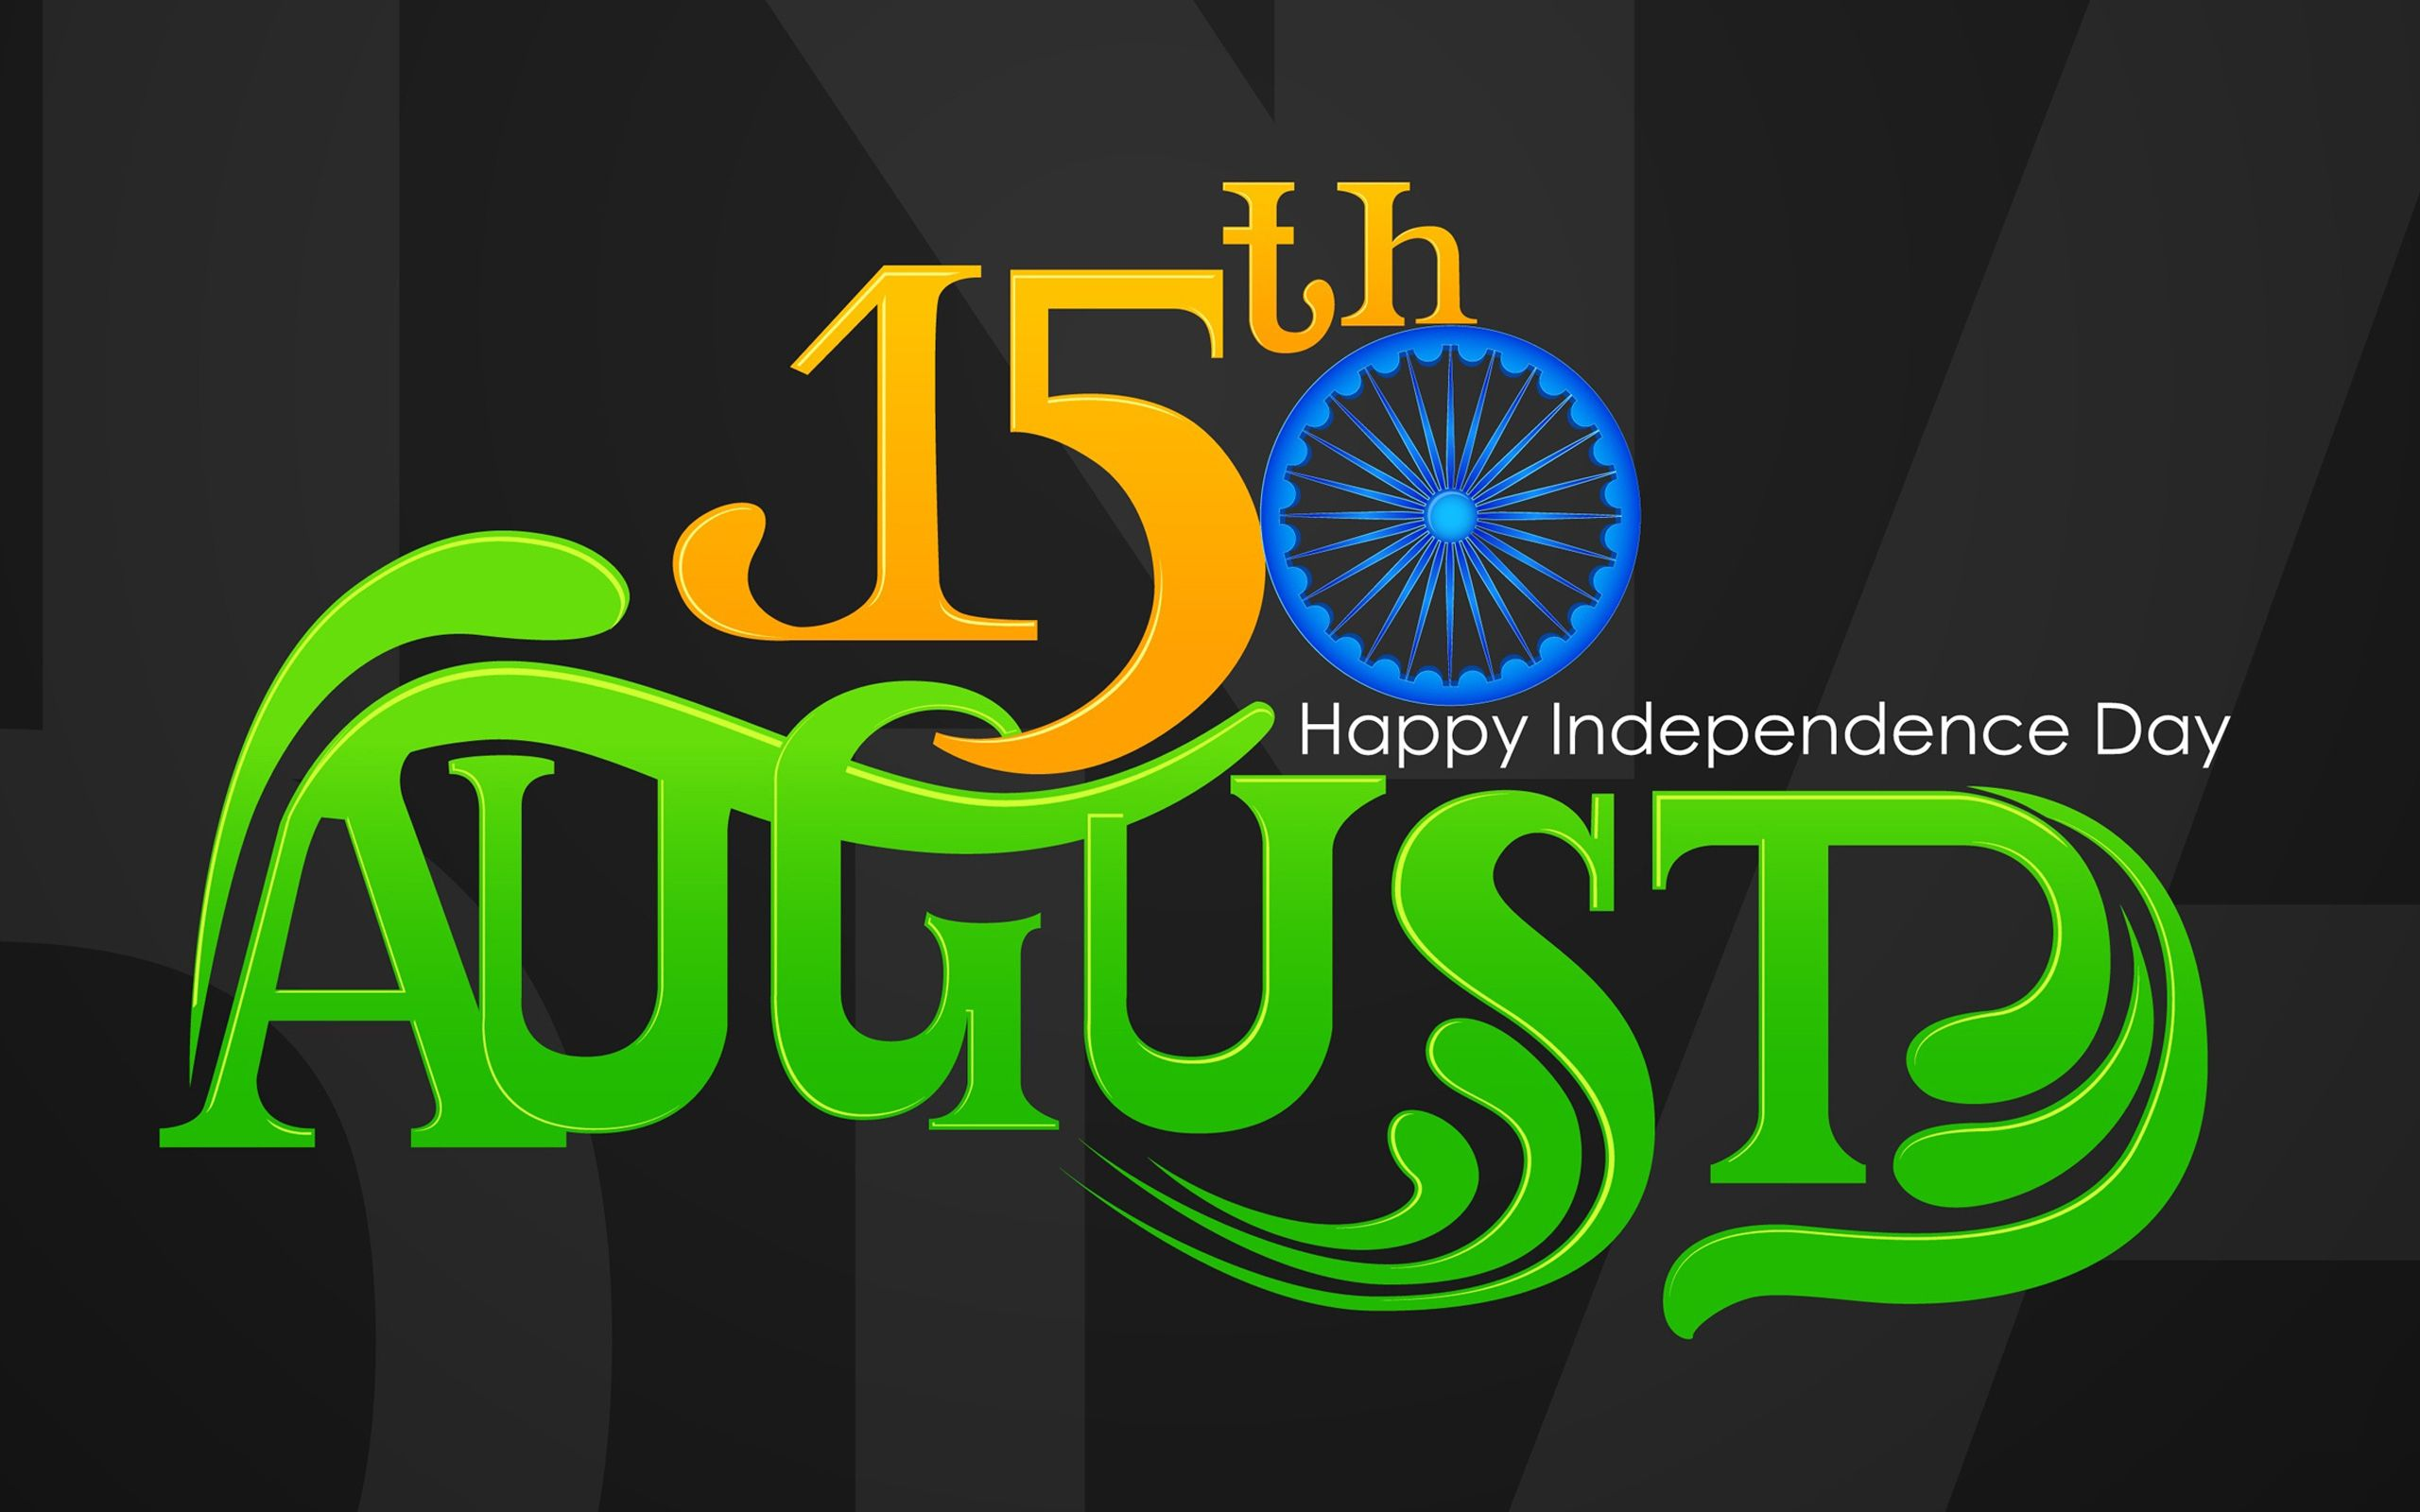 Happy Independence Day 1080p Hd Wallpaper Independence Day Wallpaper Independence Day Images Hd Independence Day Hd Wallpaper